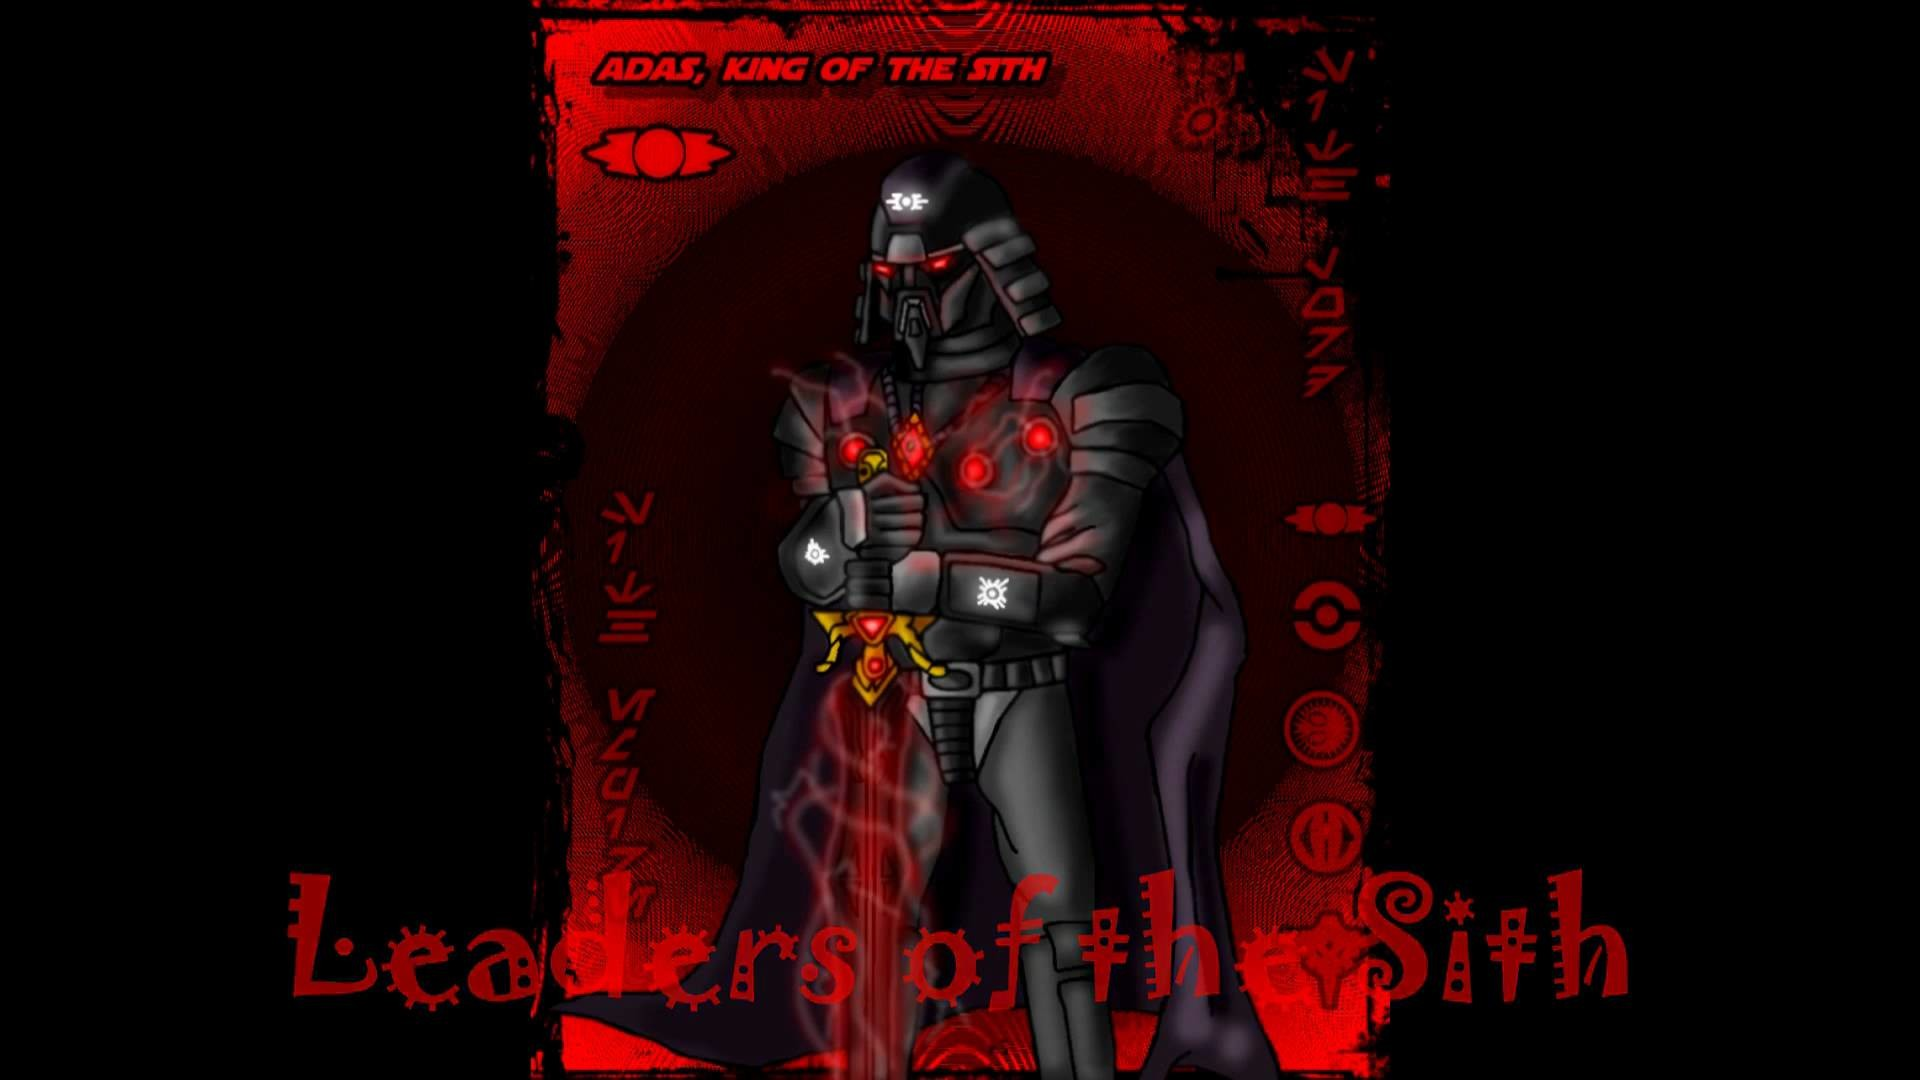 Leaders of the Sith and The Sith Code